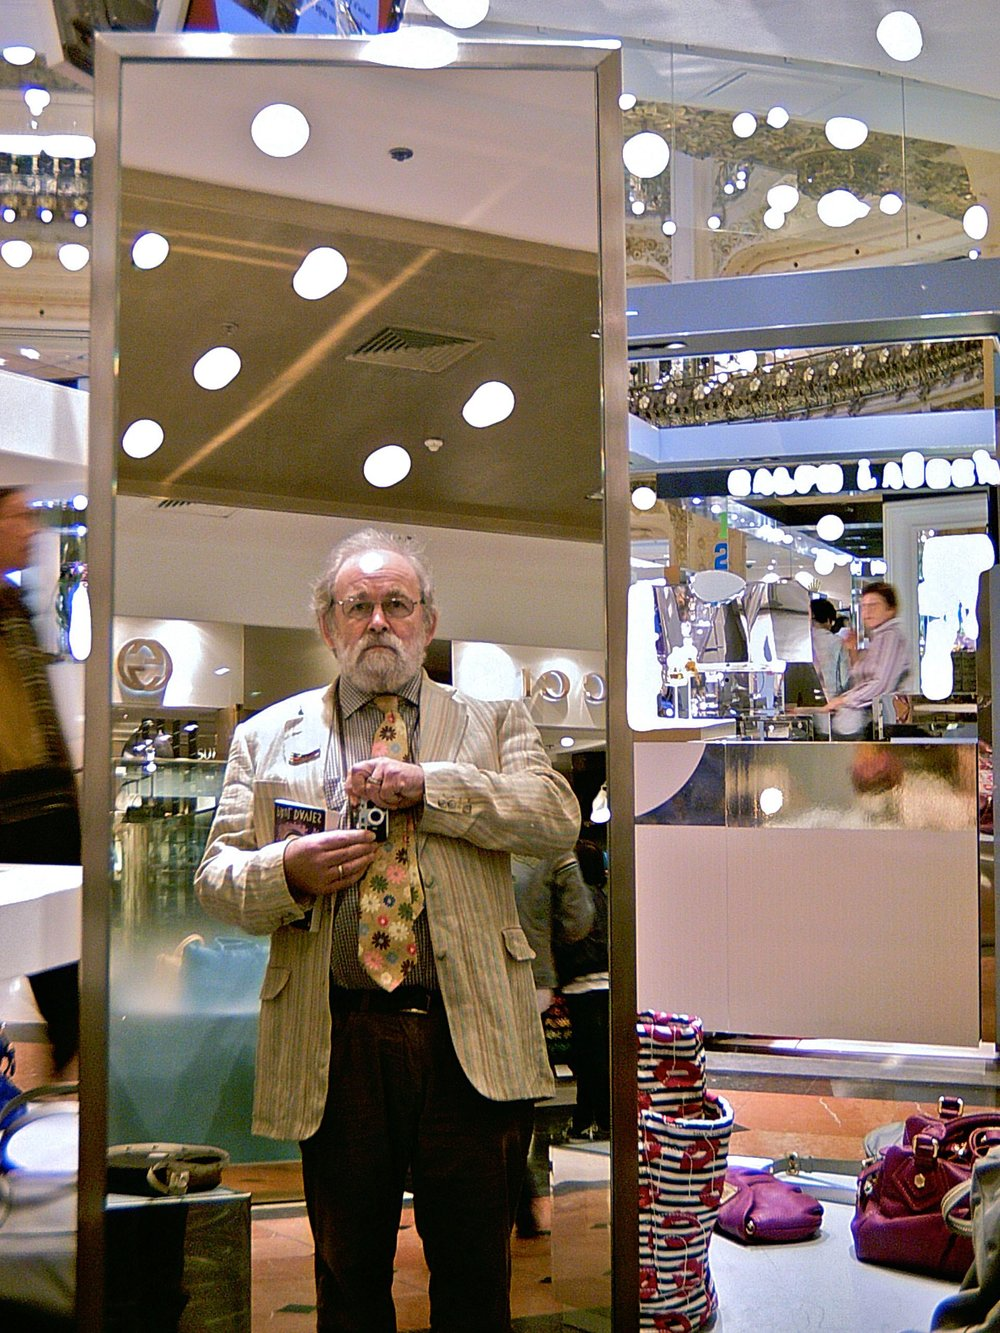 Above image and the two below: Minox indoors at Galeries Lafayette department store, Paris; automatic 1/10th second shutter speed, f2.8, manual (guessed) focus, ISO 100.